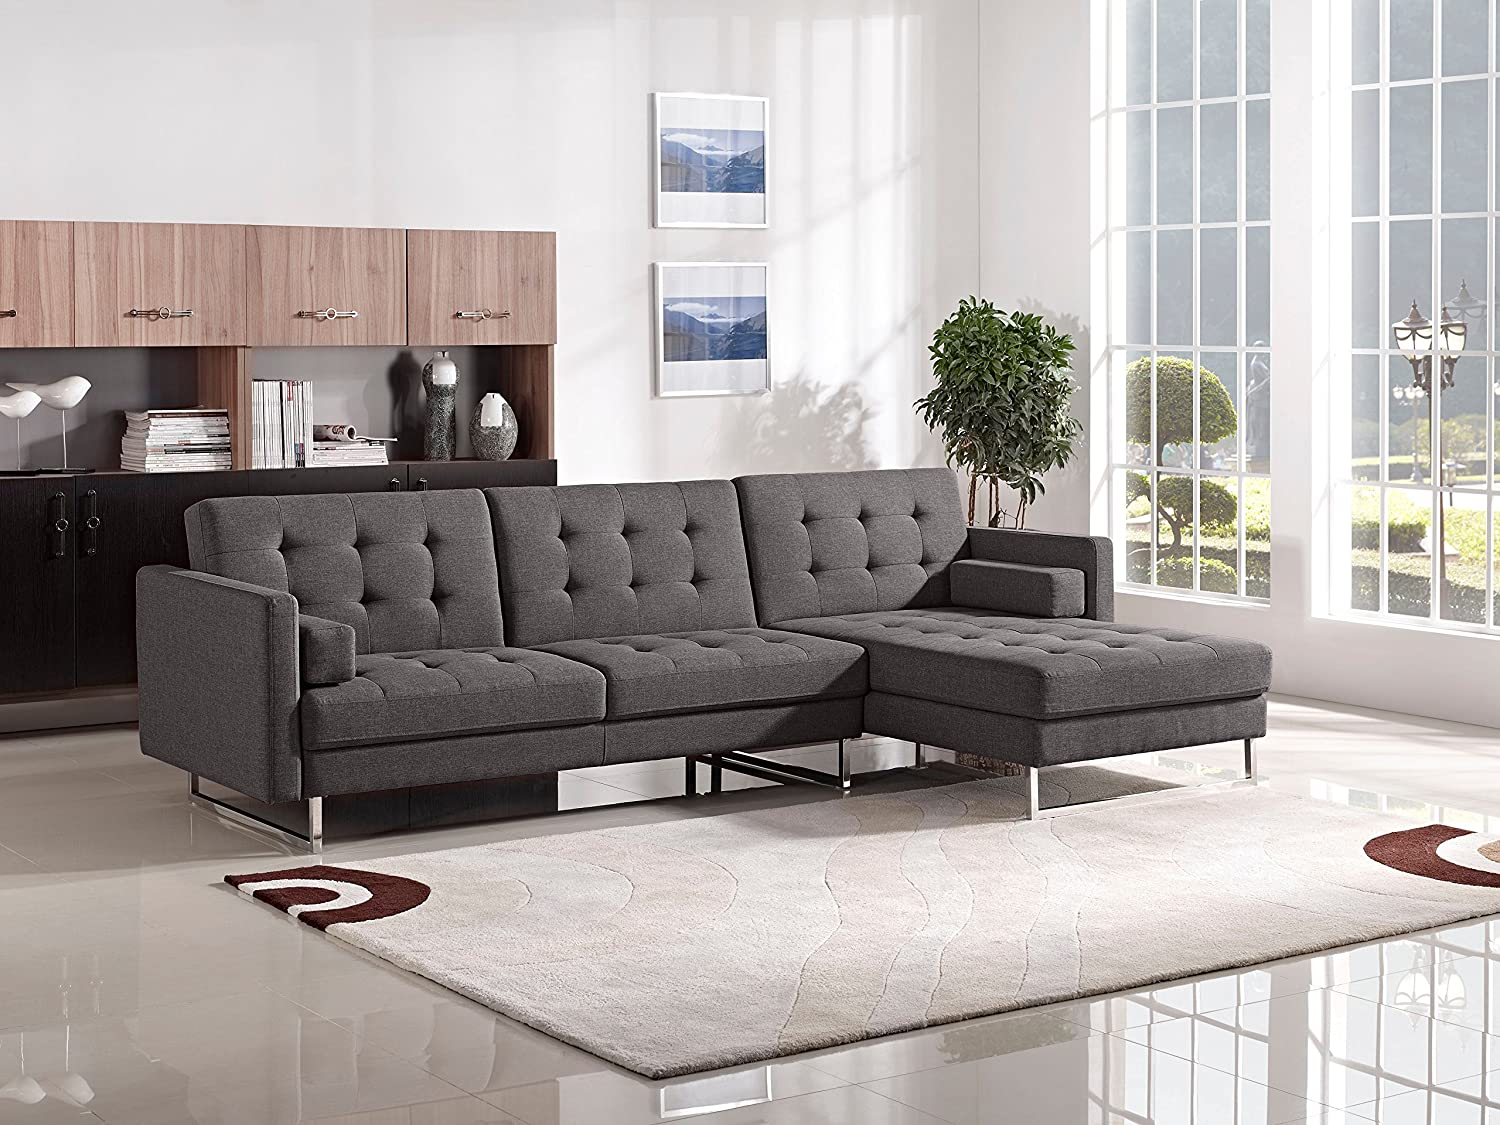 amazoncom opus convertible tufted rf chaise sectional by diamond sofa grey includes left face sofa right face chaise  opusrfsectgr kitchen dining. amazoncom opus convertible tufted rf chaise sectional by diamond